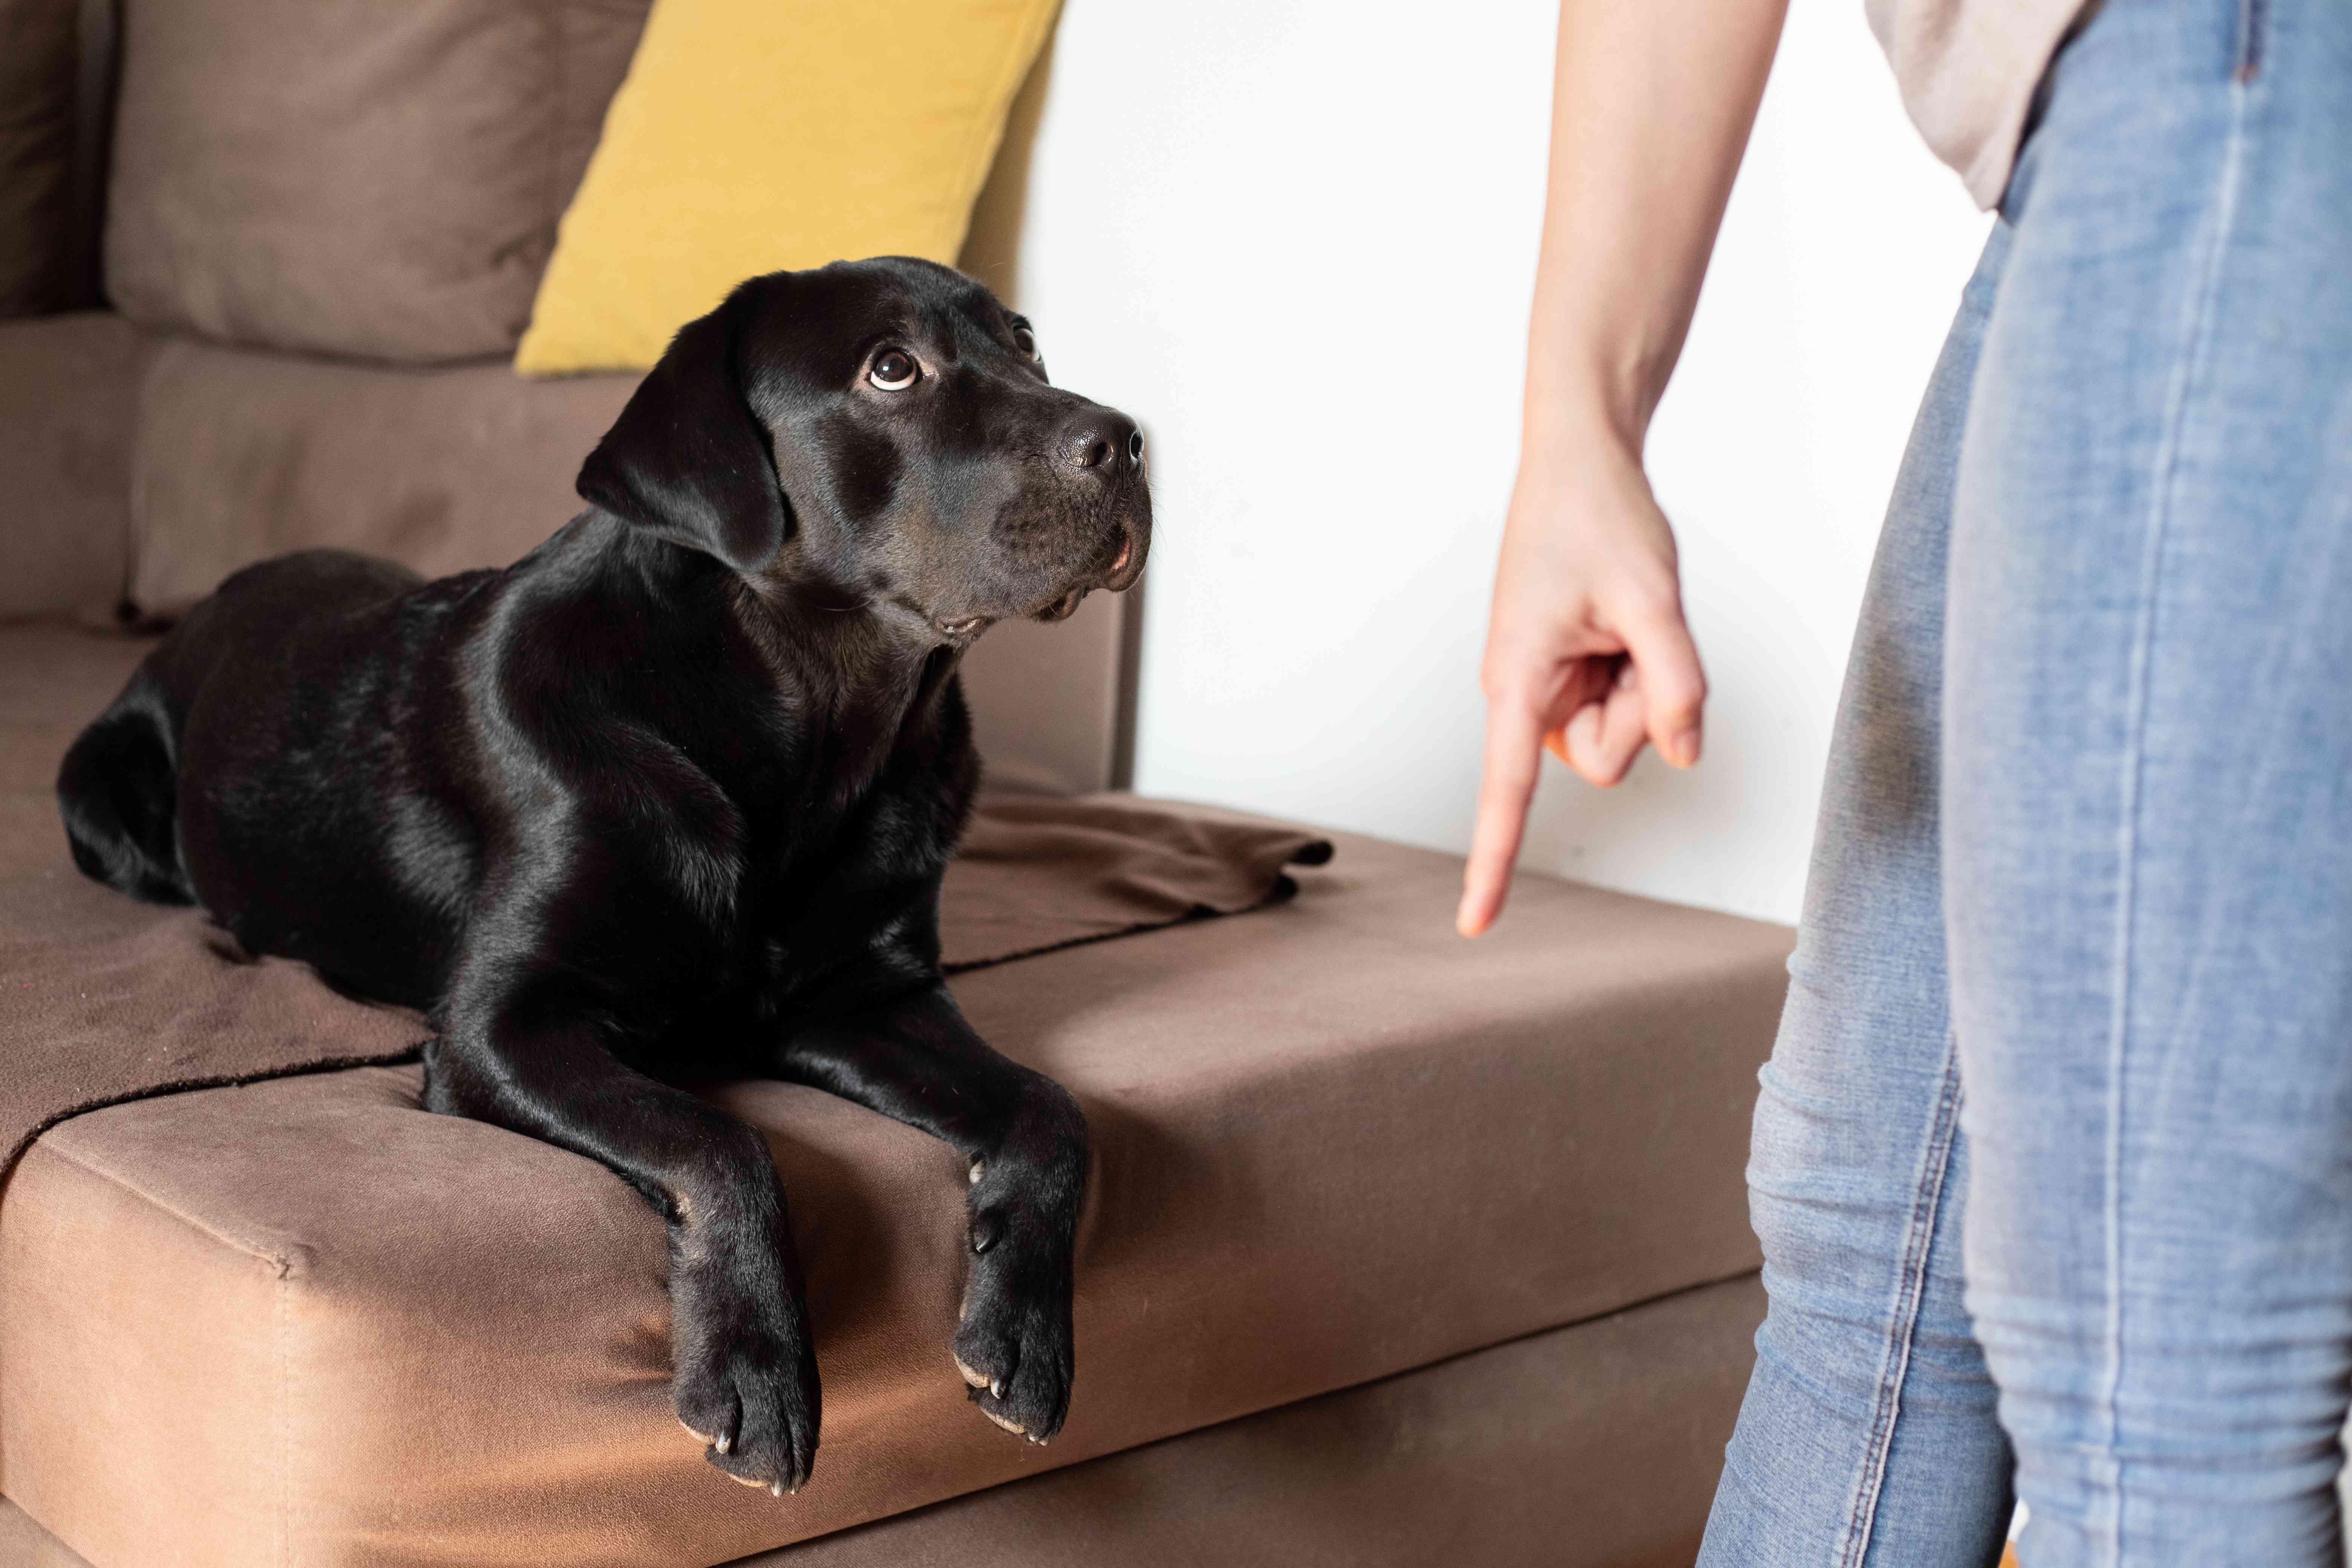 person commands dog to get off the couch while dog looks confused